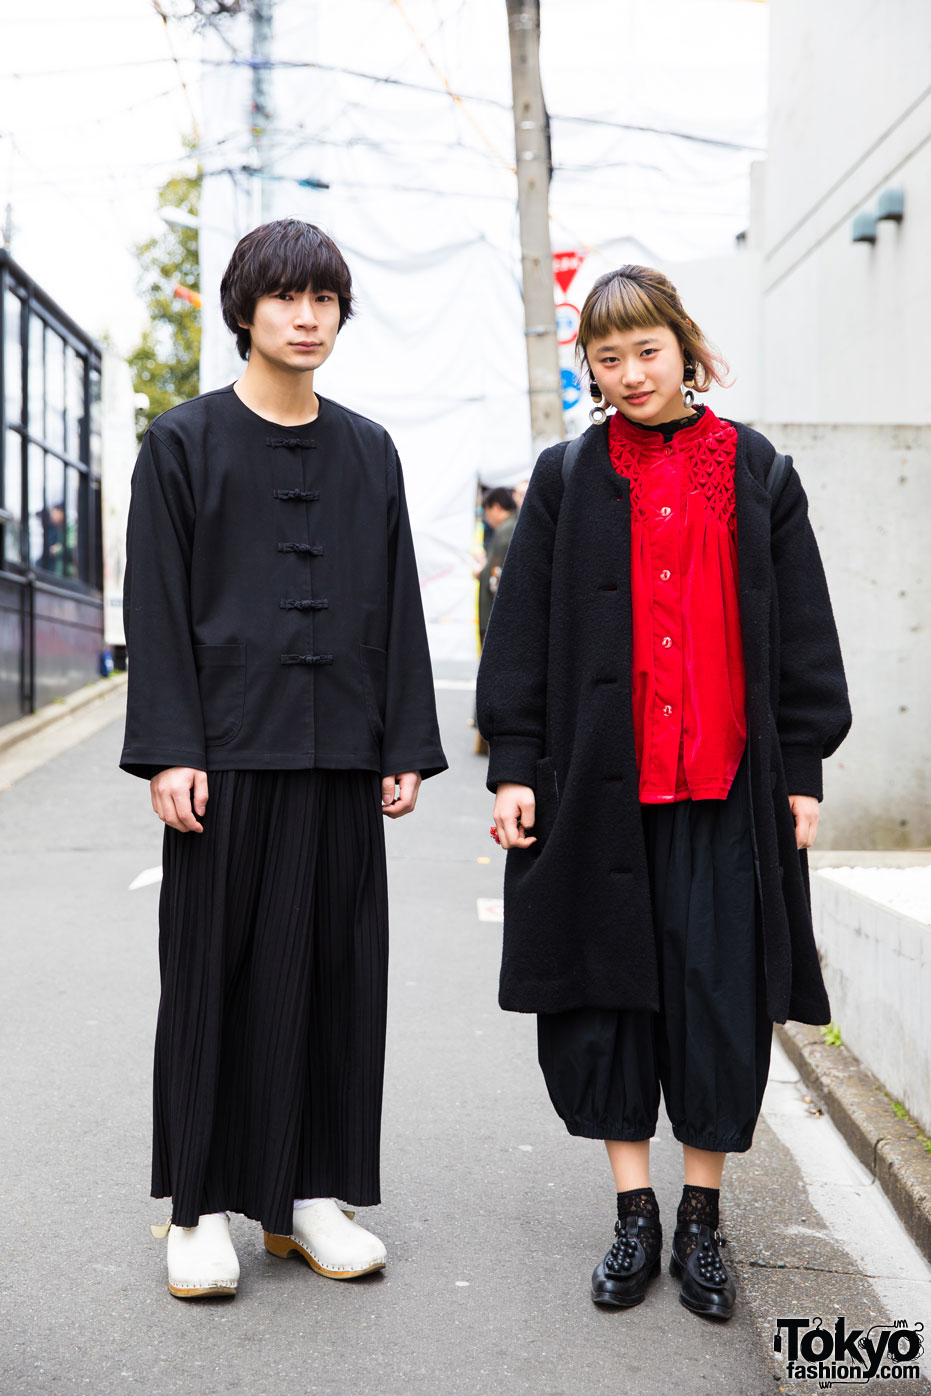 35b7976b168 Harajuku Duo in Vintage Fashion w  Comme des Garcons